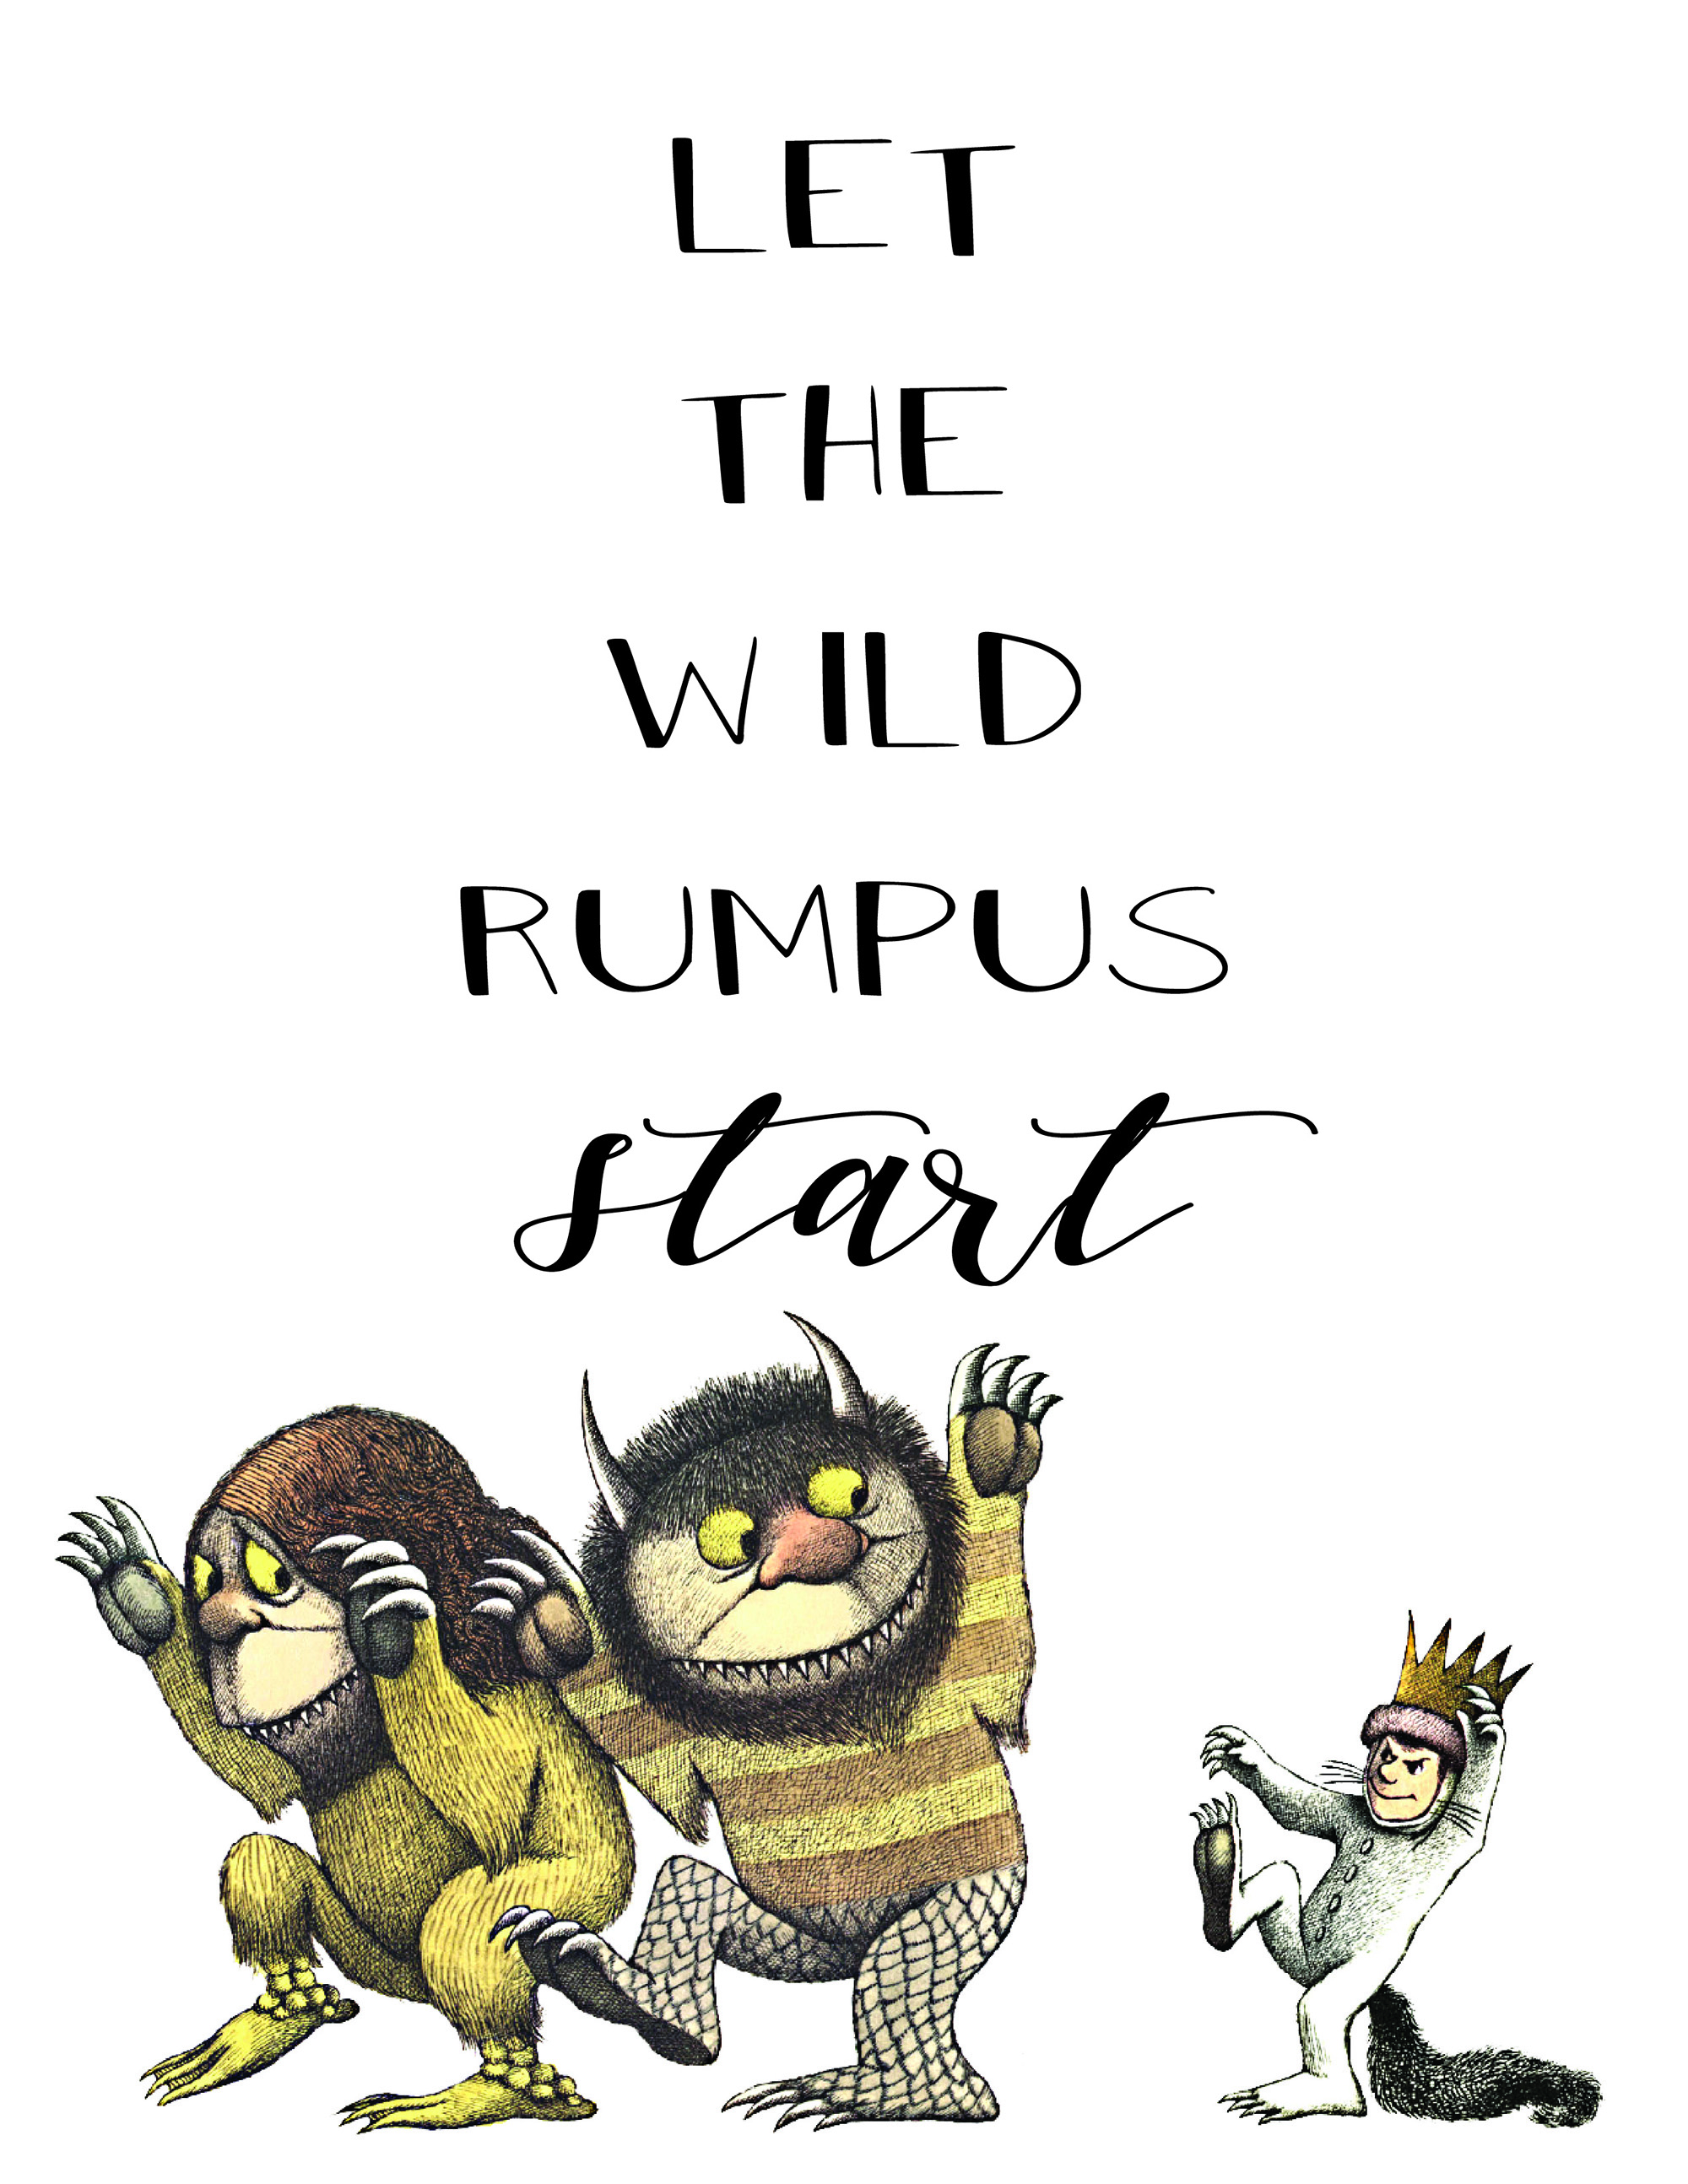 Genius image pertaining to let the wild rumpus start printable